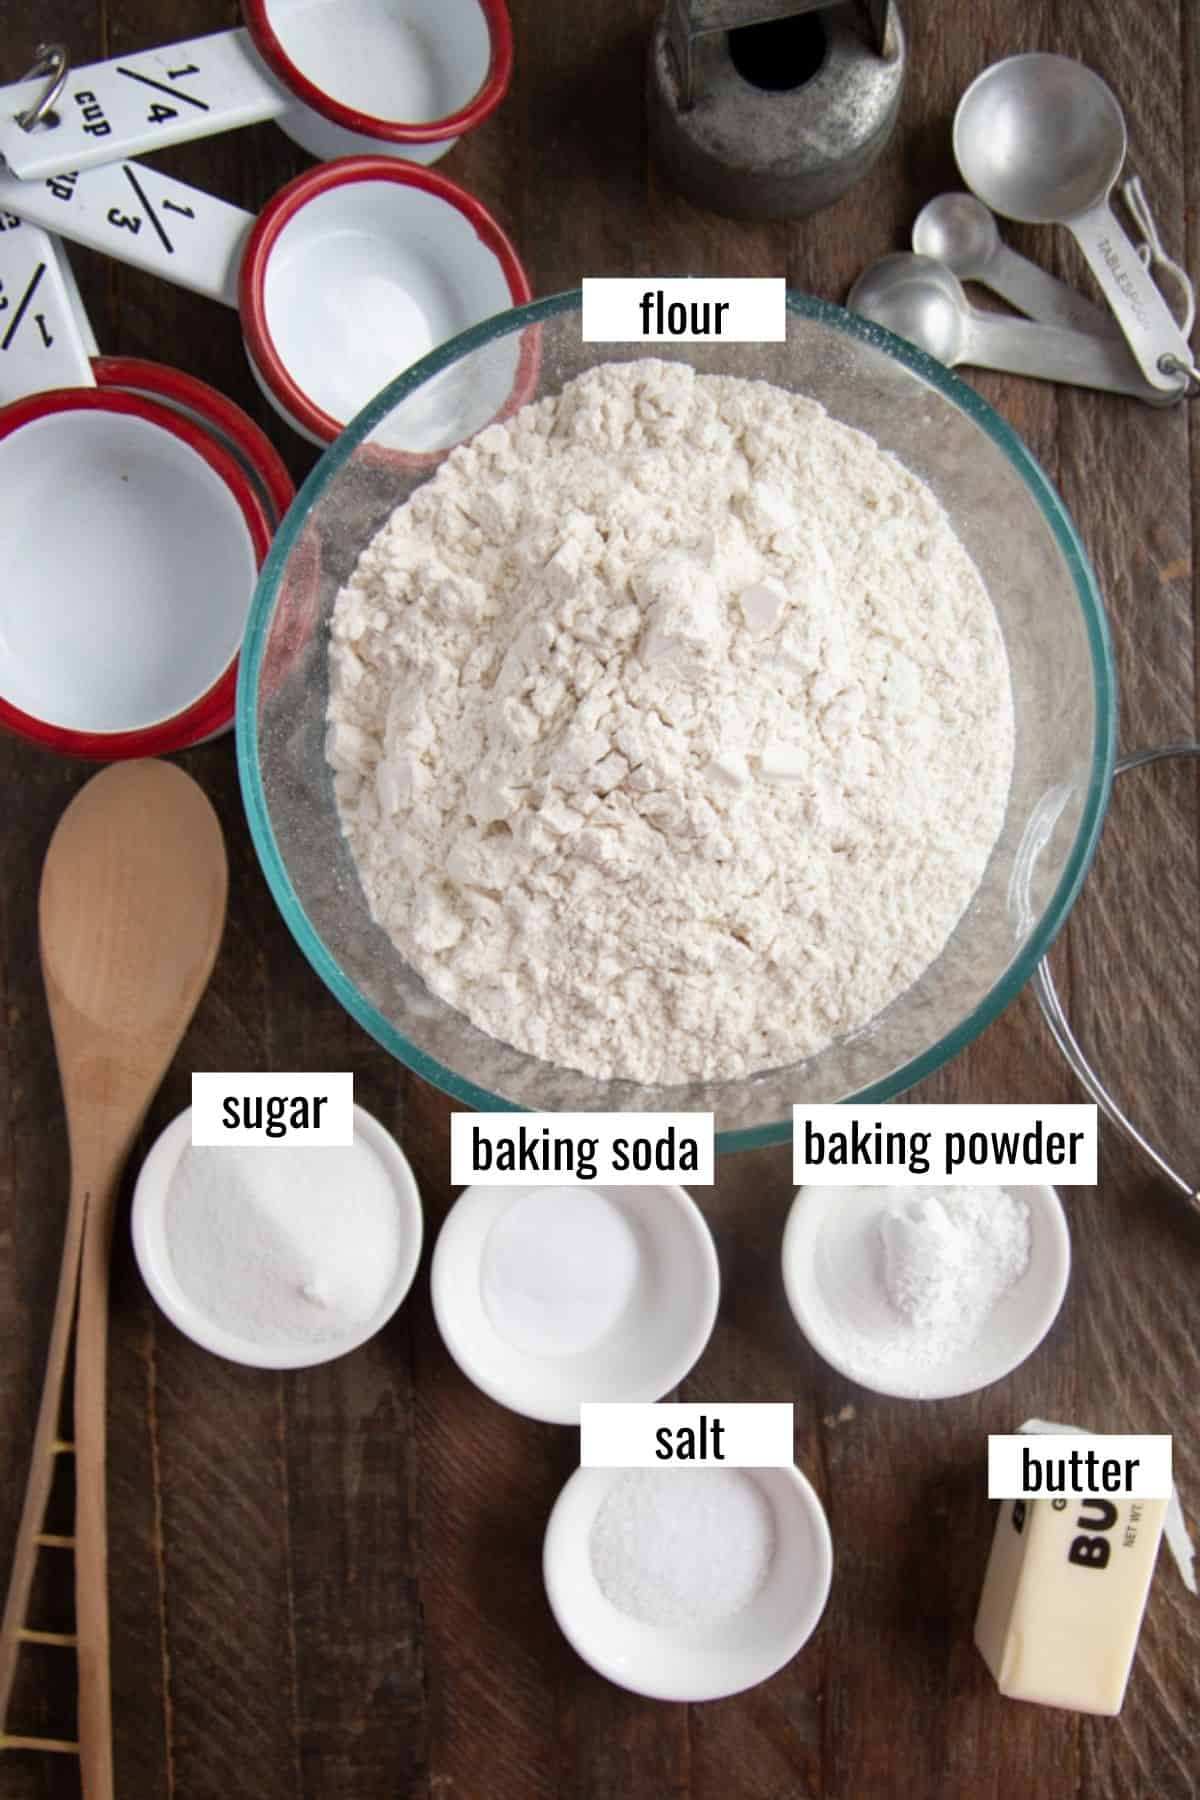 ingredients for making homemade bisquick laid out labeled